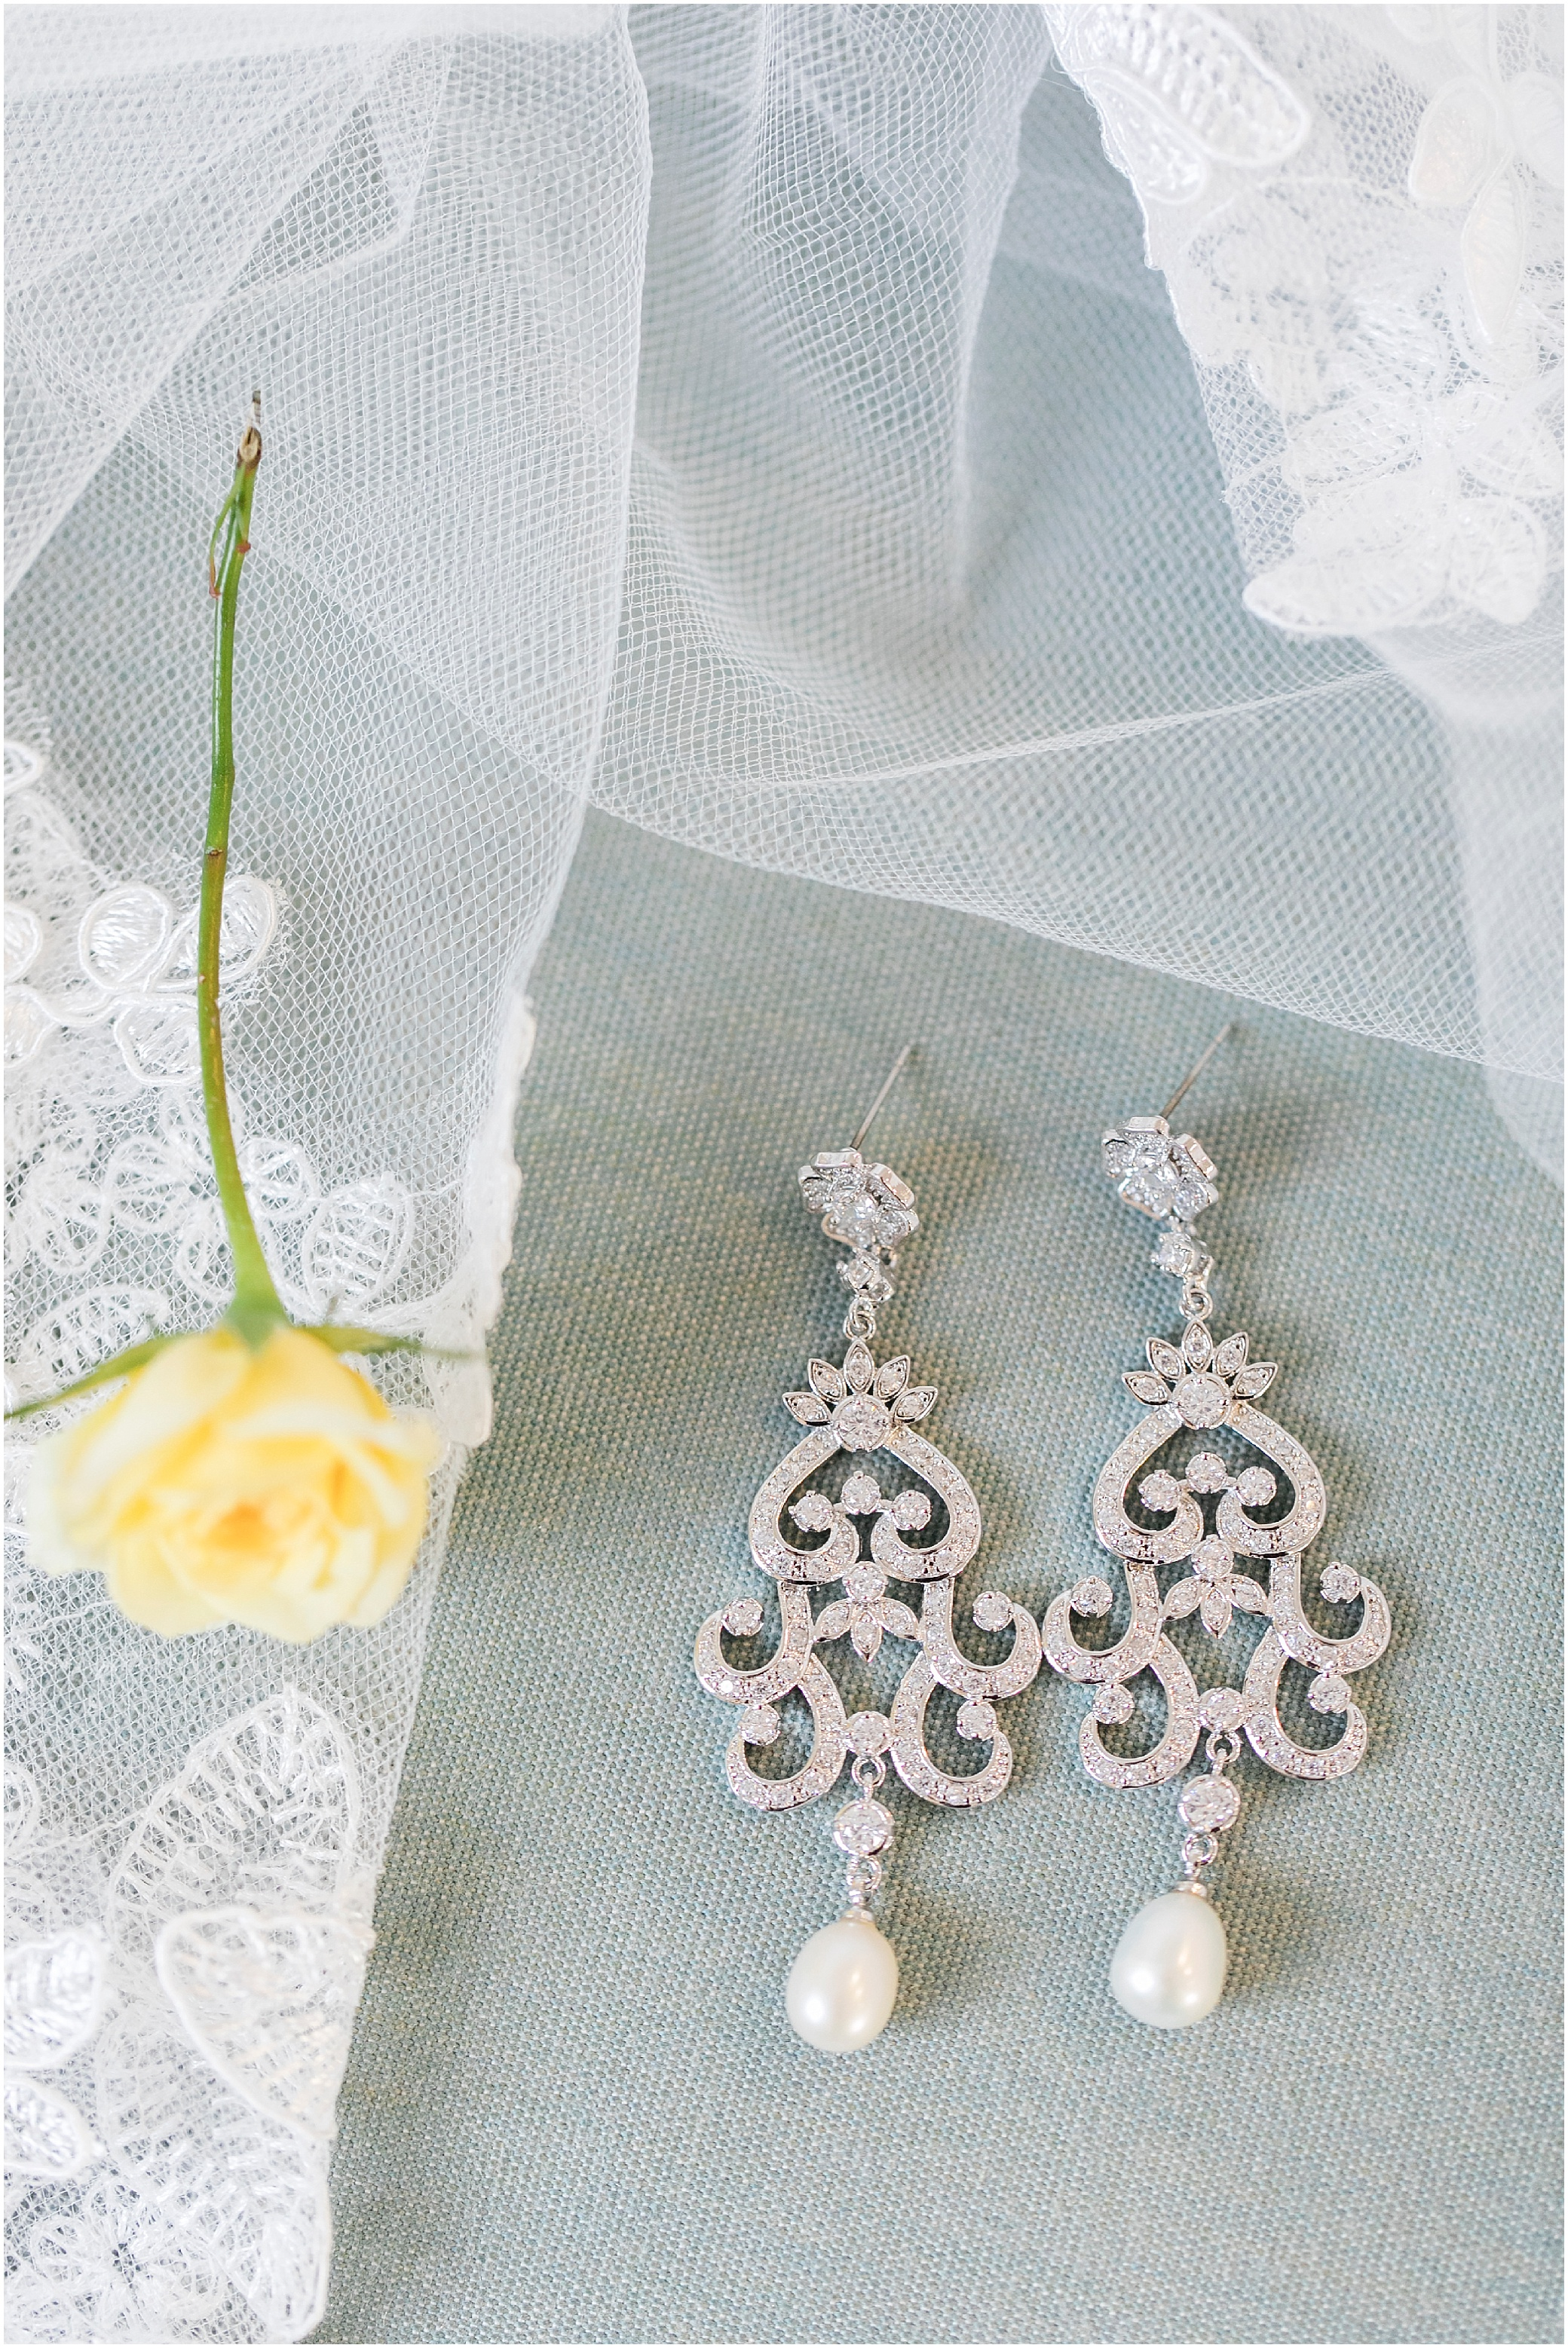 crystal clear event wedding giveaway, historic post office wedding, Waterford event rentals,